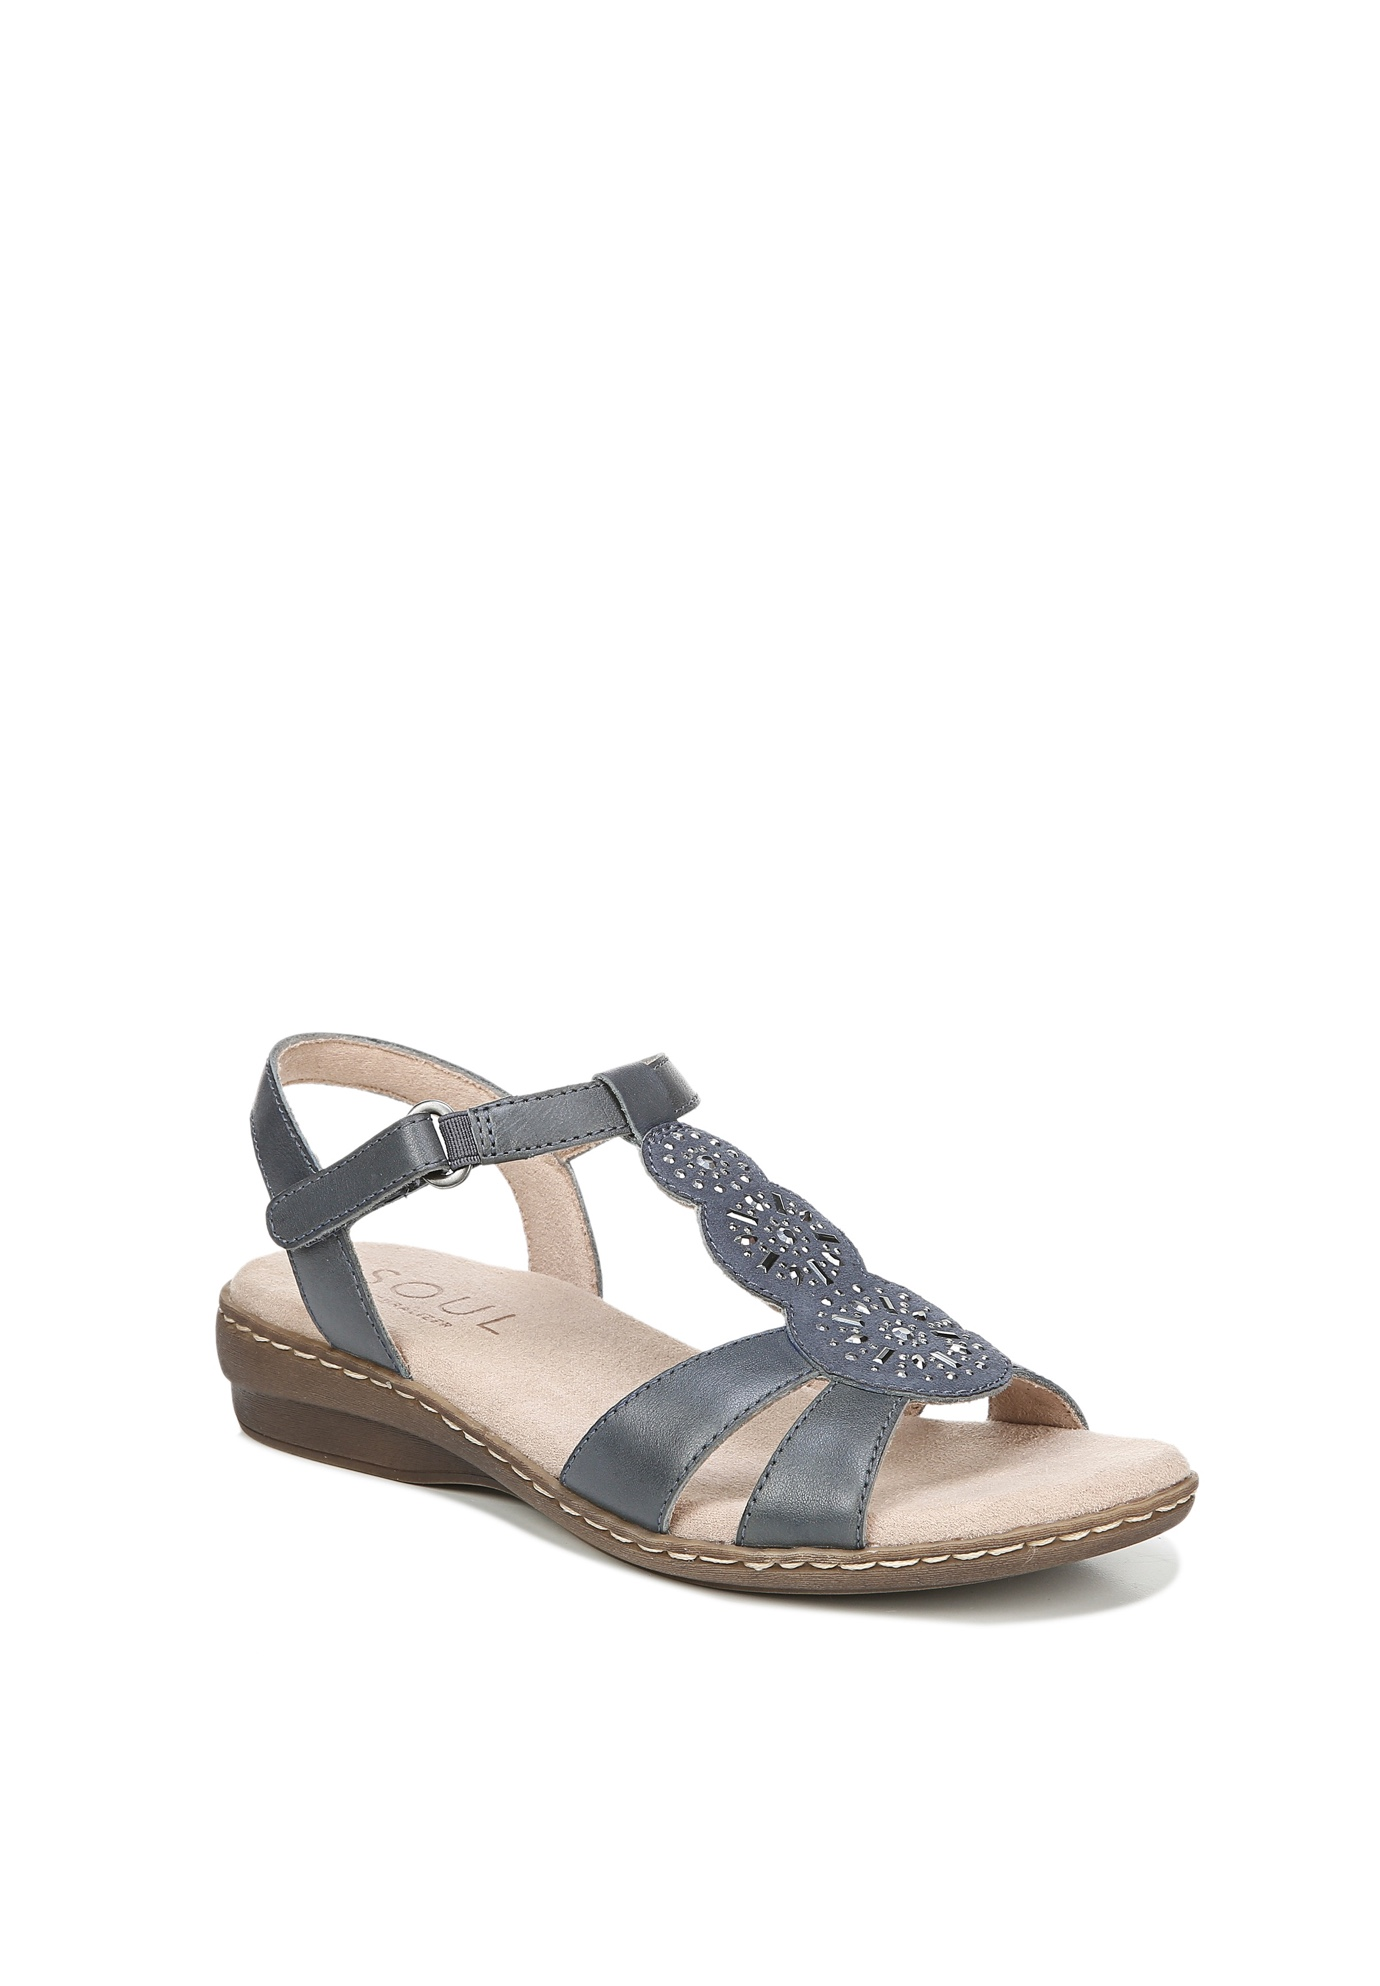 Belle Sandals by SOUL Naturalizer,